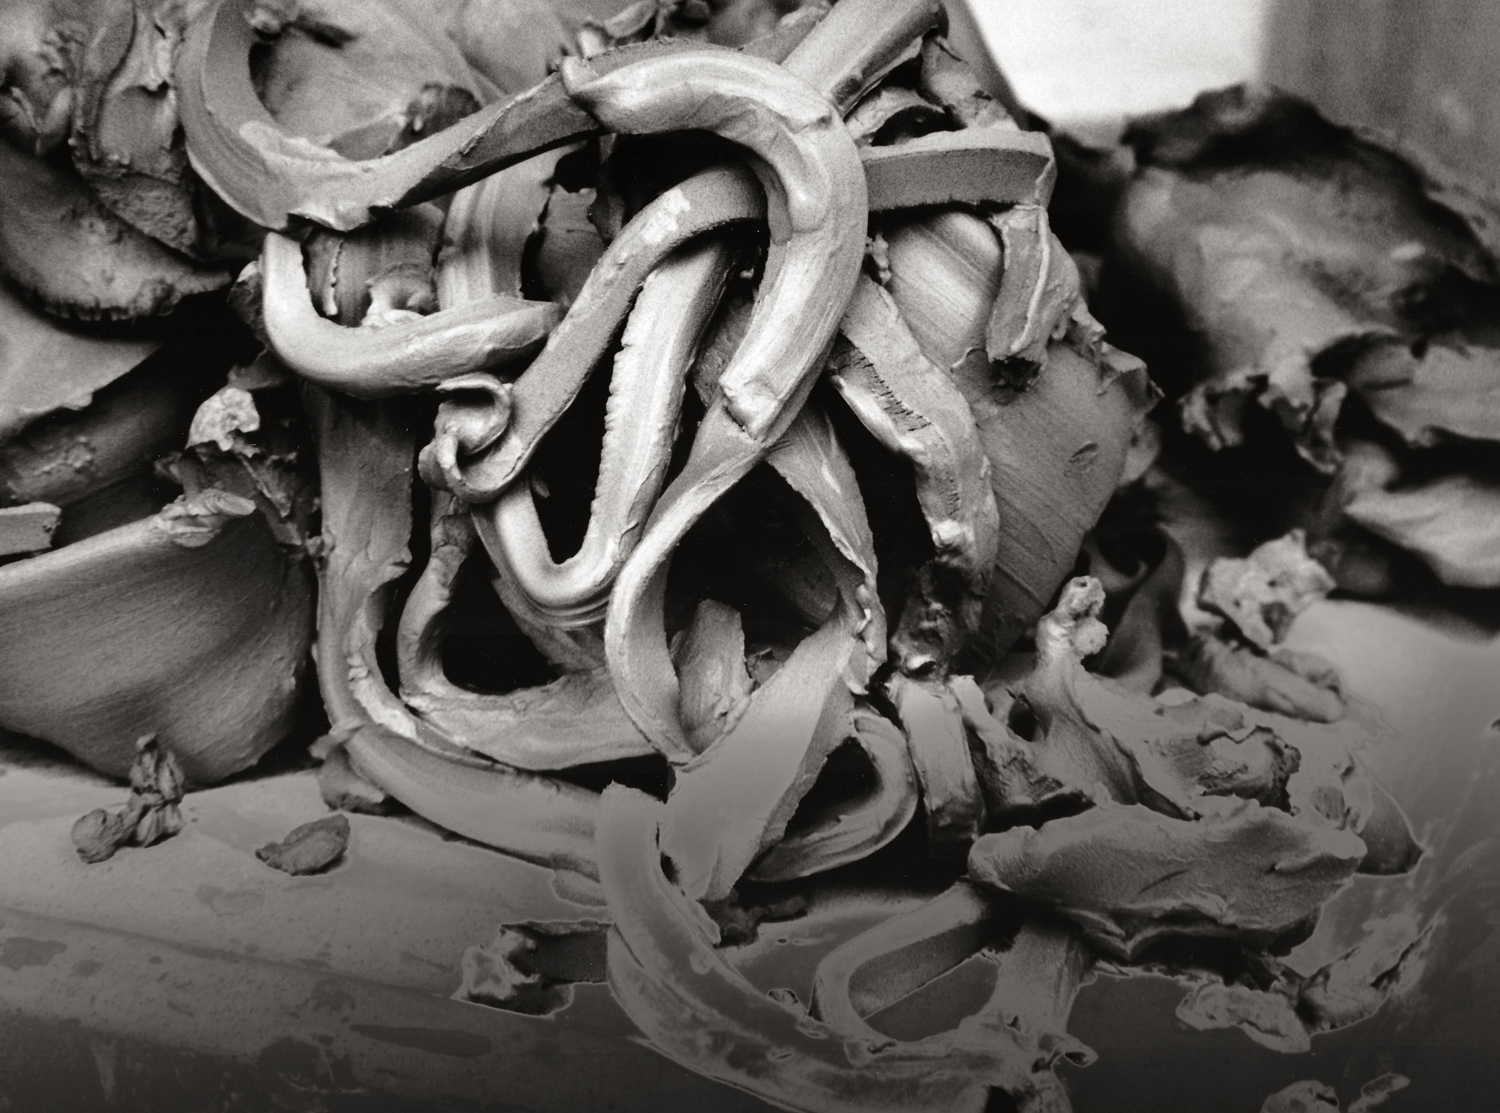 Untitled (Clay Portfolio)  (2013) gelatin silver print, 7 3/4′′ x 5 3/4′′, from a portfolio of 21 images